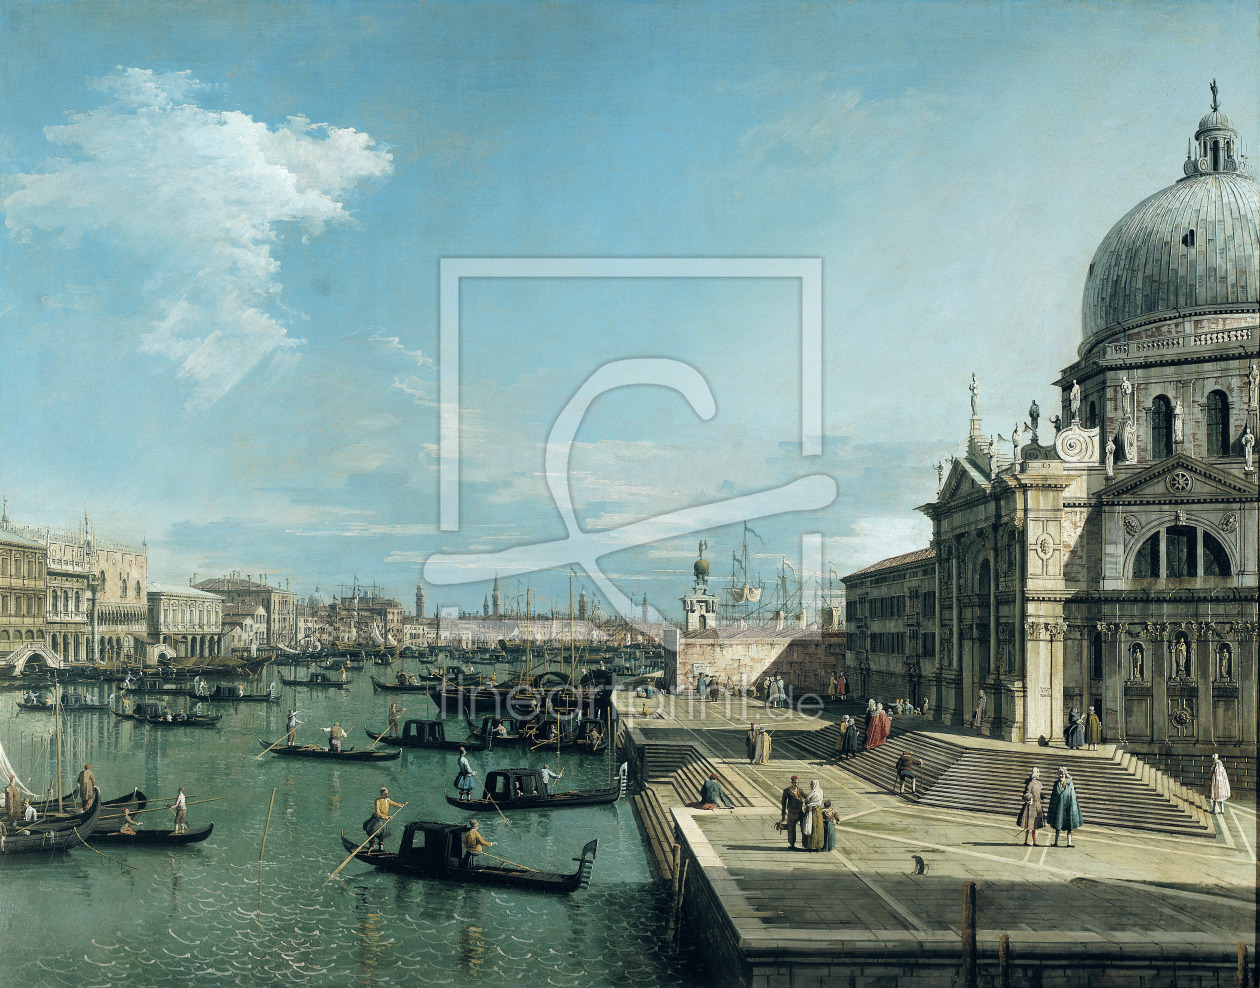 Bild-Nr.: 31000167 The Entrance to the Grand Canal and the church of Santa Maria della Salute, Veni erstellt von Canal, Giovanni Antonio & Bellotto, Bernardo